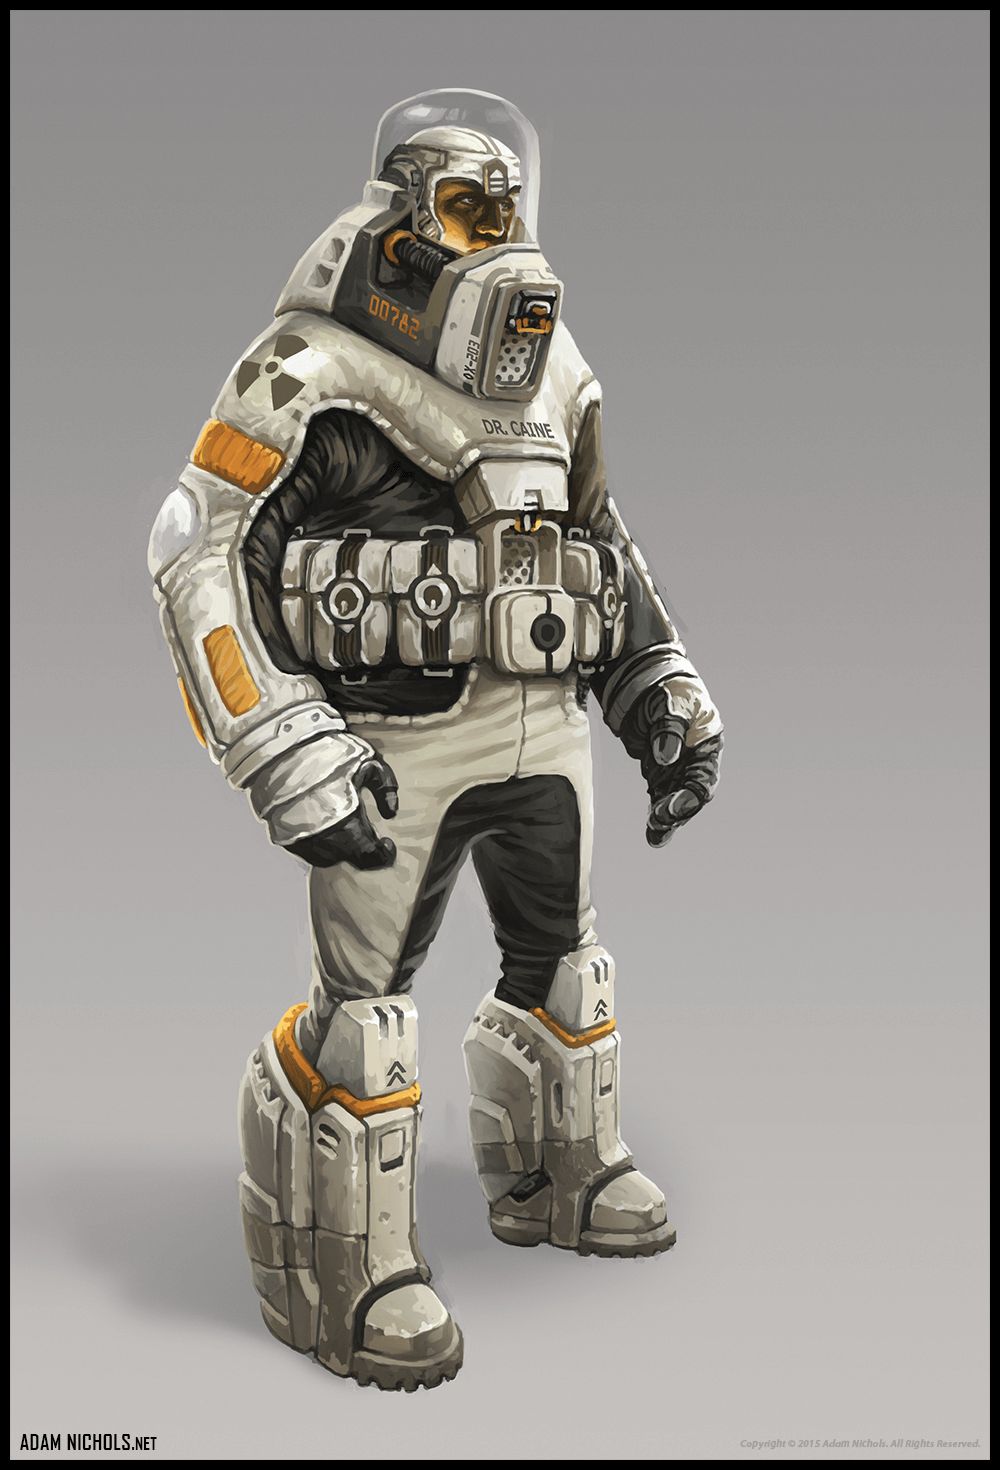 Stasis - Engineer Concept Character Design